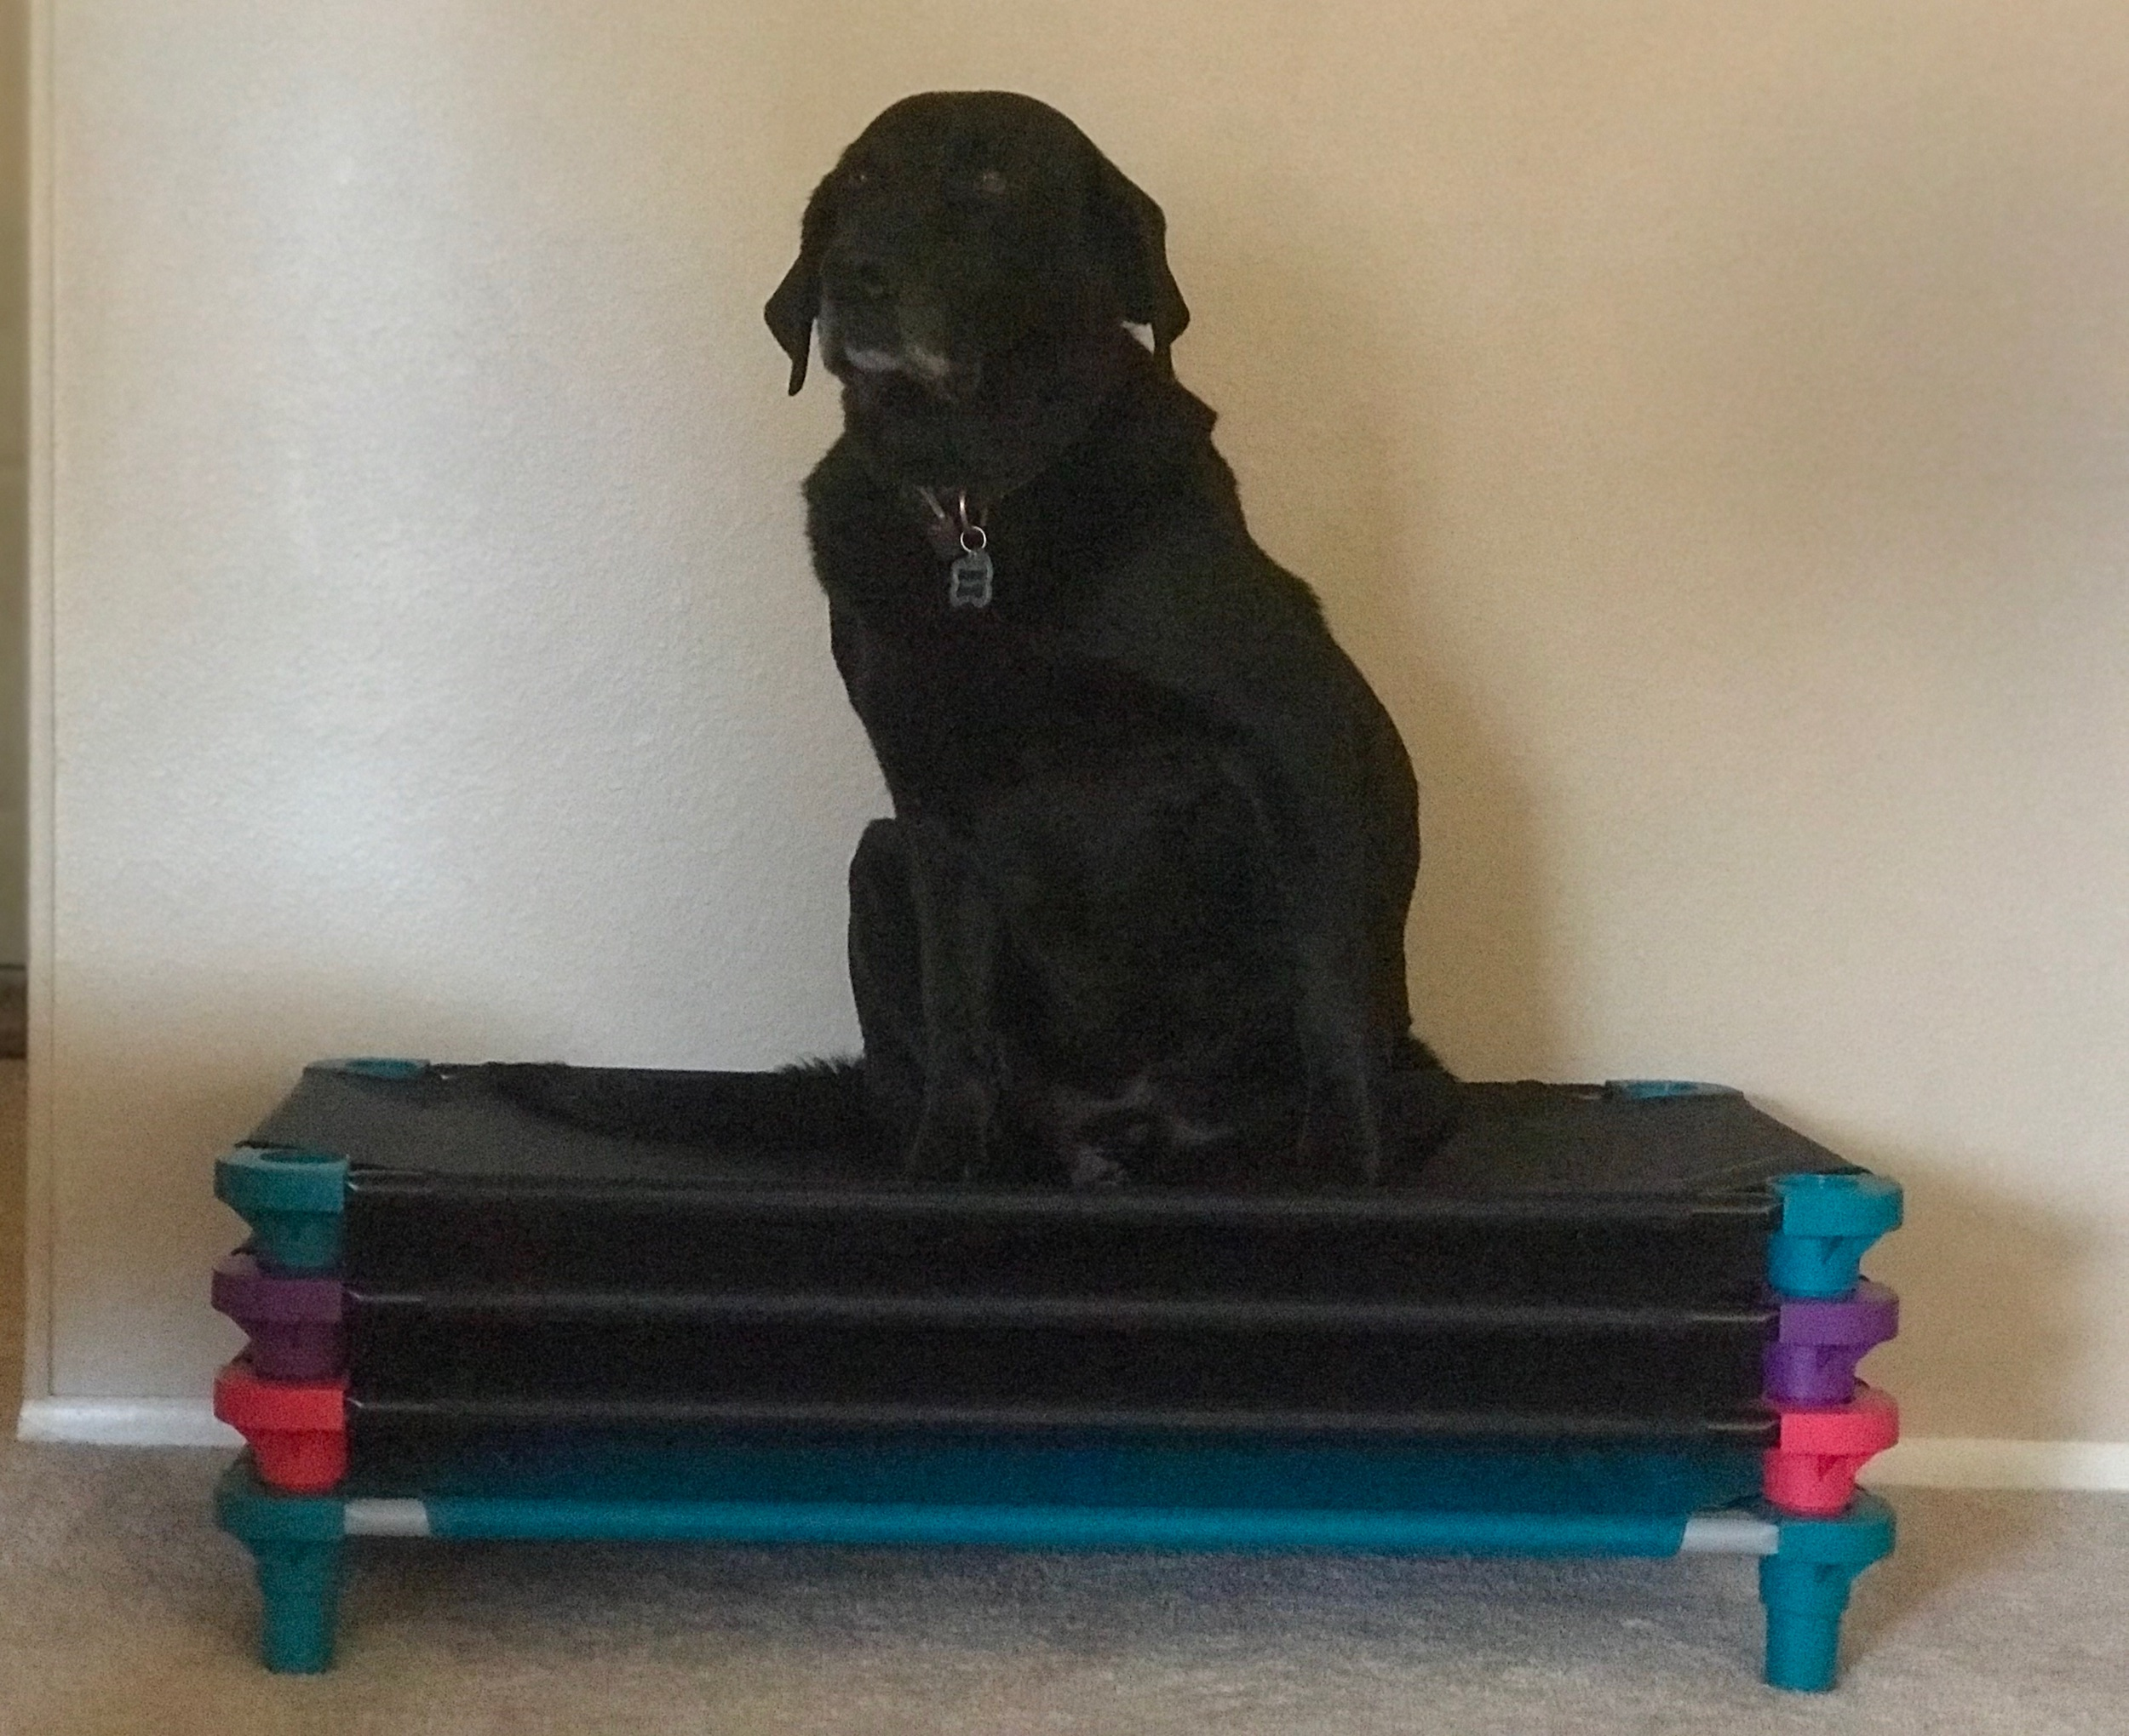 Sammy's modeling our raised pet cots that are placed in each kennel to protect elbows from hygromas. A hygroma forms when the dog rests on a fairly hard surface. The pressure of his weight has created tissue damage over the elbow bones. The area is not able to heal because of the repeated tissue damage from the dog simply resting on his elbows. A fluid pocket forms as the body attempts to create its own cushion. This fluid pocket is called a hygroma. Thank you to my vet Dr. Geoff Berthiaume for the ongoing education over all these years!